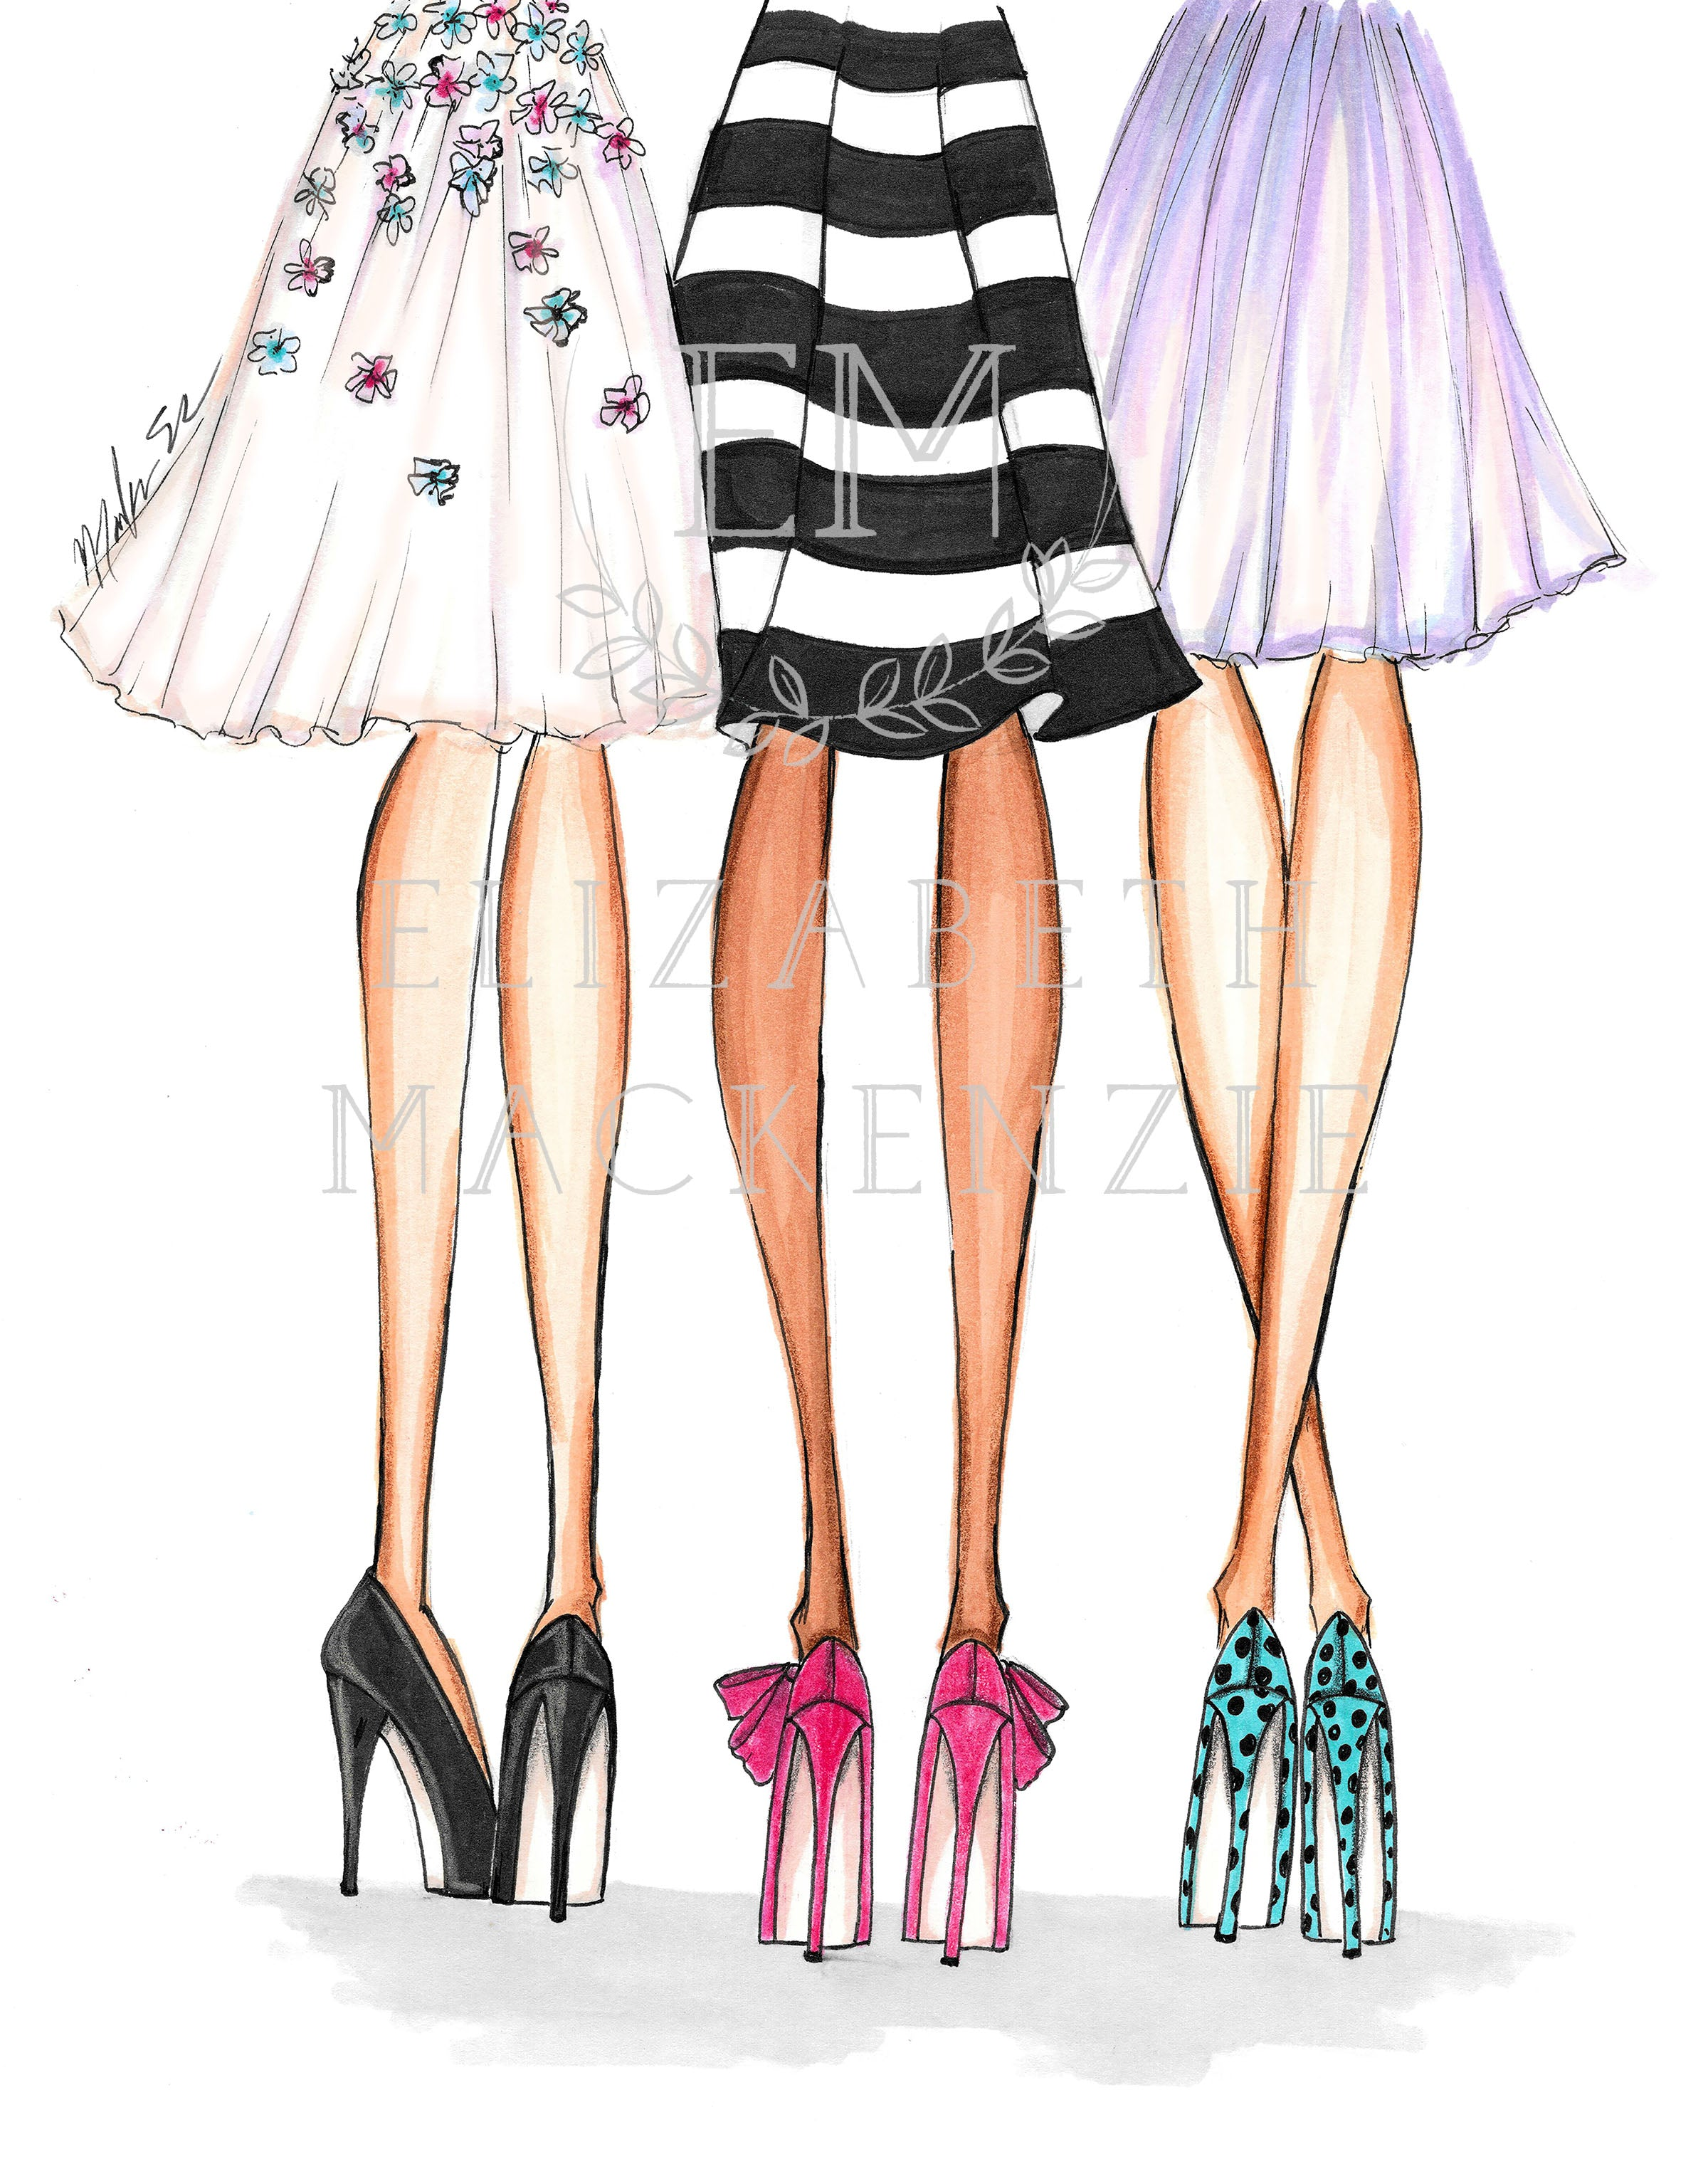 Girls in Heels Fashion Illustration